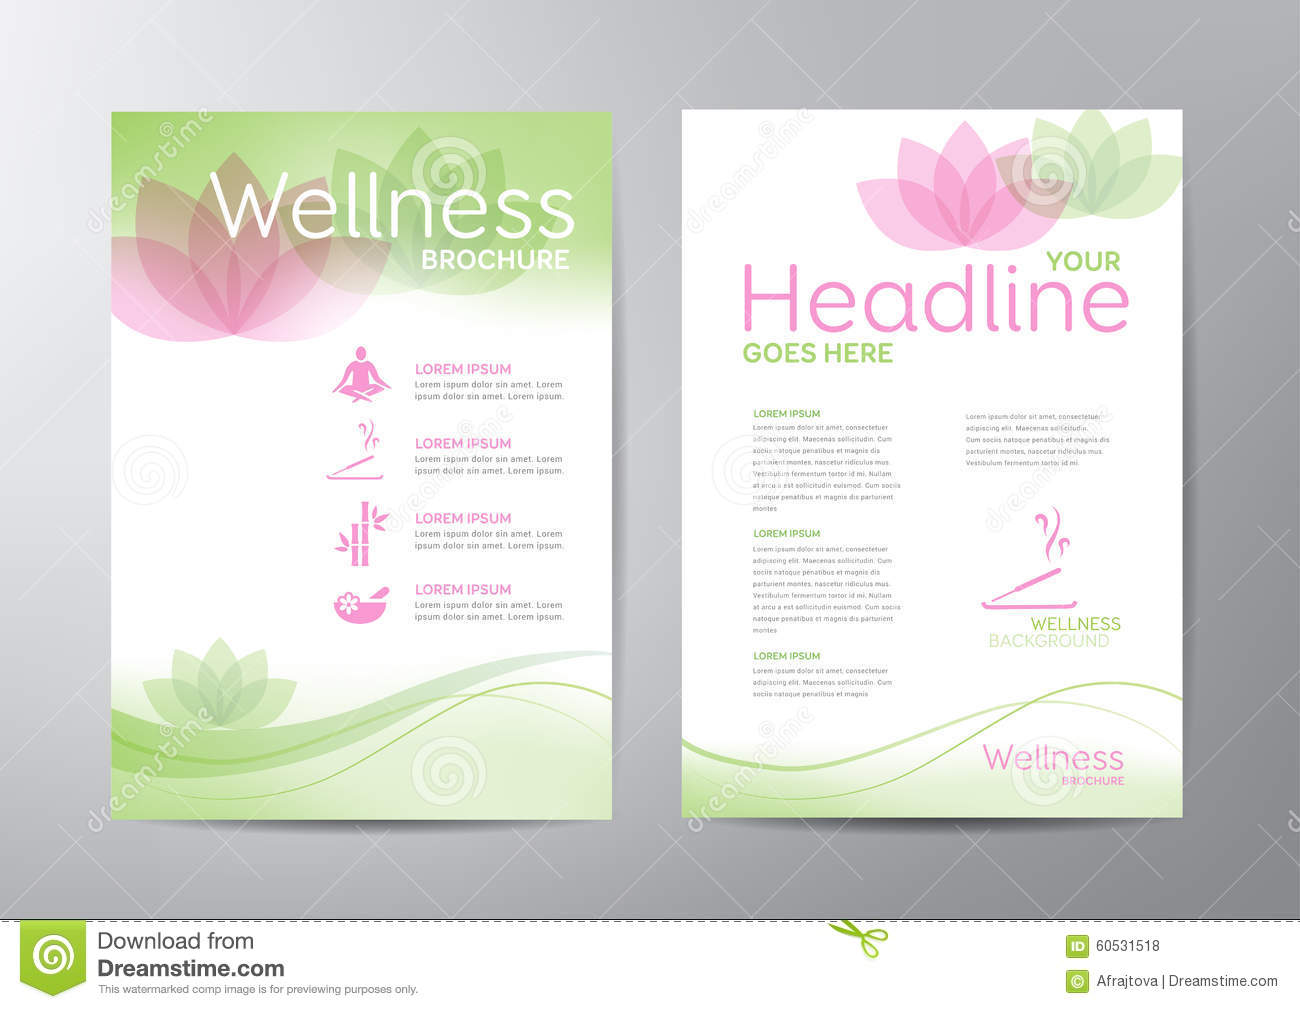 Wellness Brochure Stock Vector - Image: 60531518